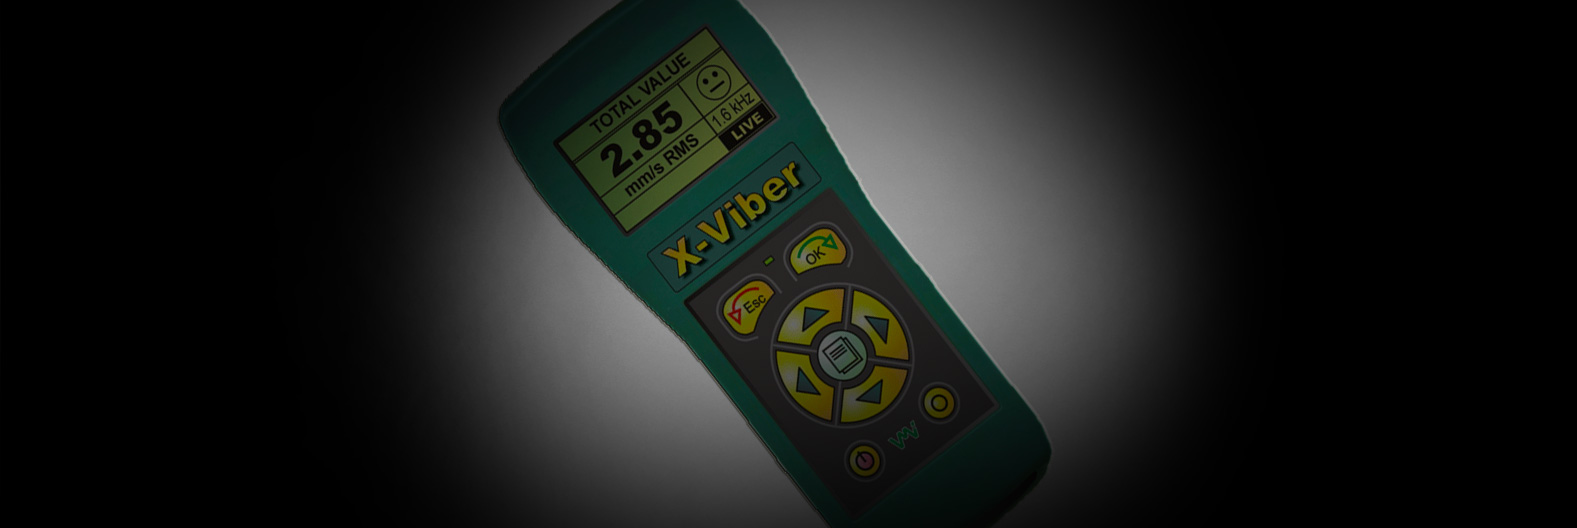 condition monitoring tool xviber